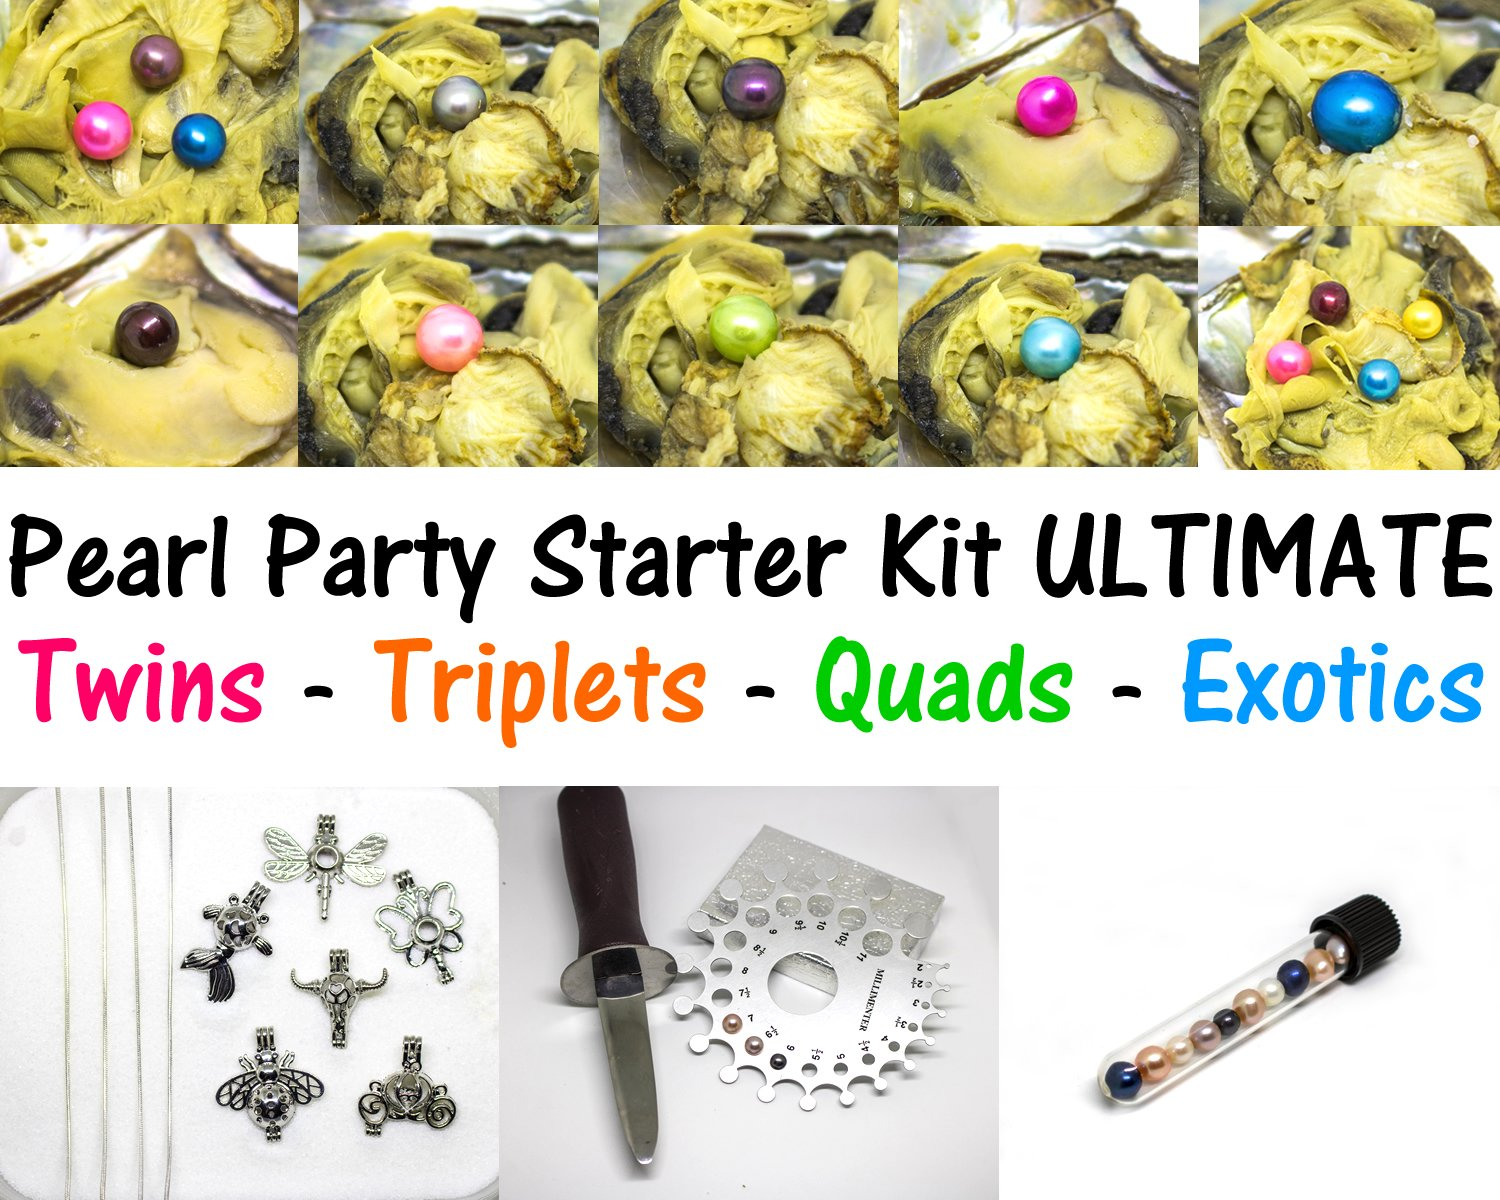 Akoya Oysters Pearl Party Starter Kit Ultimate - 20 Akoya Oysters w/ 1x Quadruplet + 2x Triplets + 3x Twins + 8 Pearl Cage Pendant Necklaces + Oyster Shuck + Pearl Gauge + Work at Home Business by Maddie's Pearls